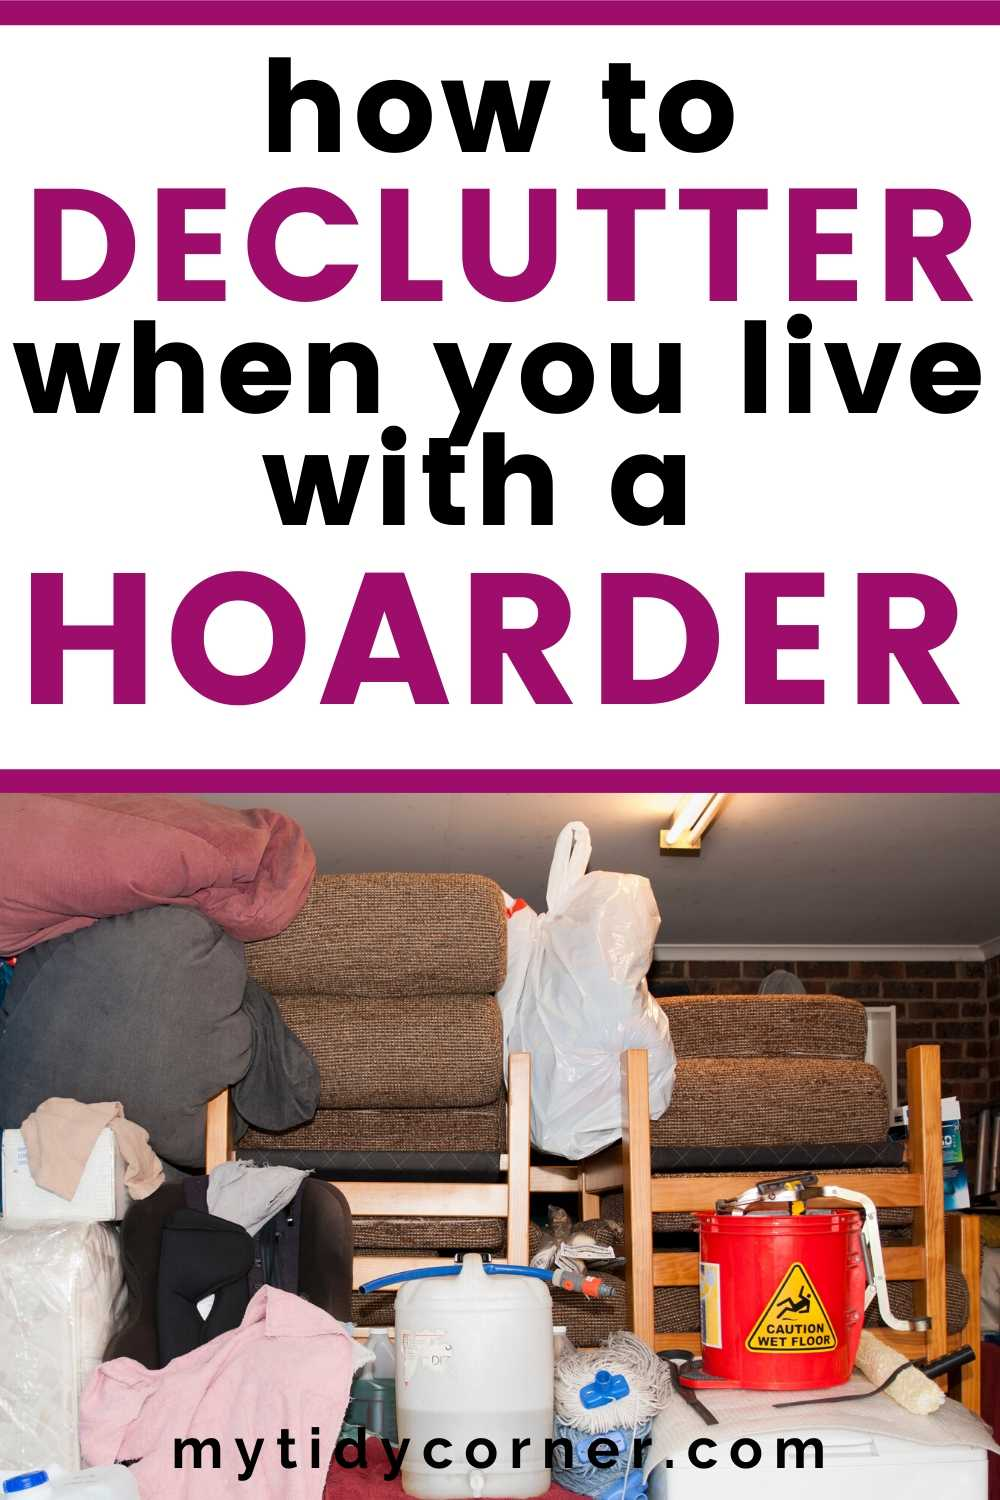 Decluttering when you live with a hoarder